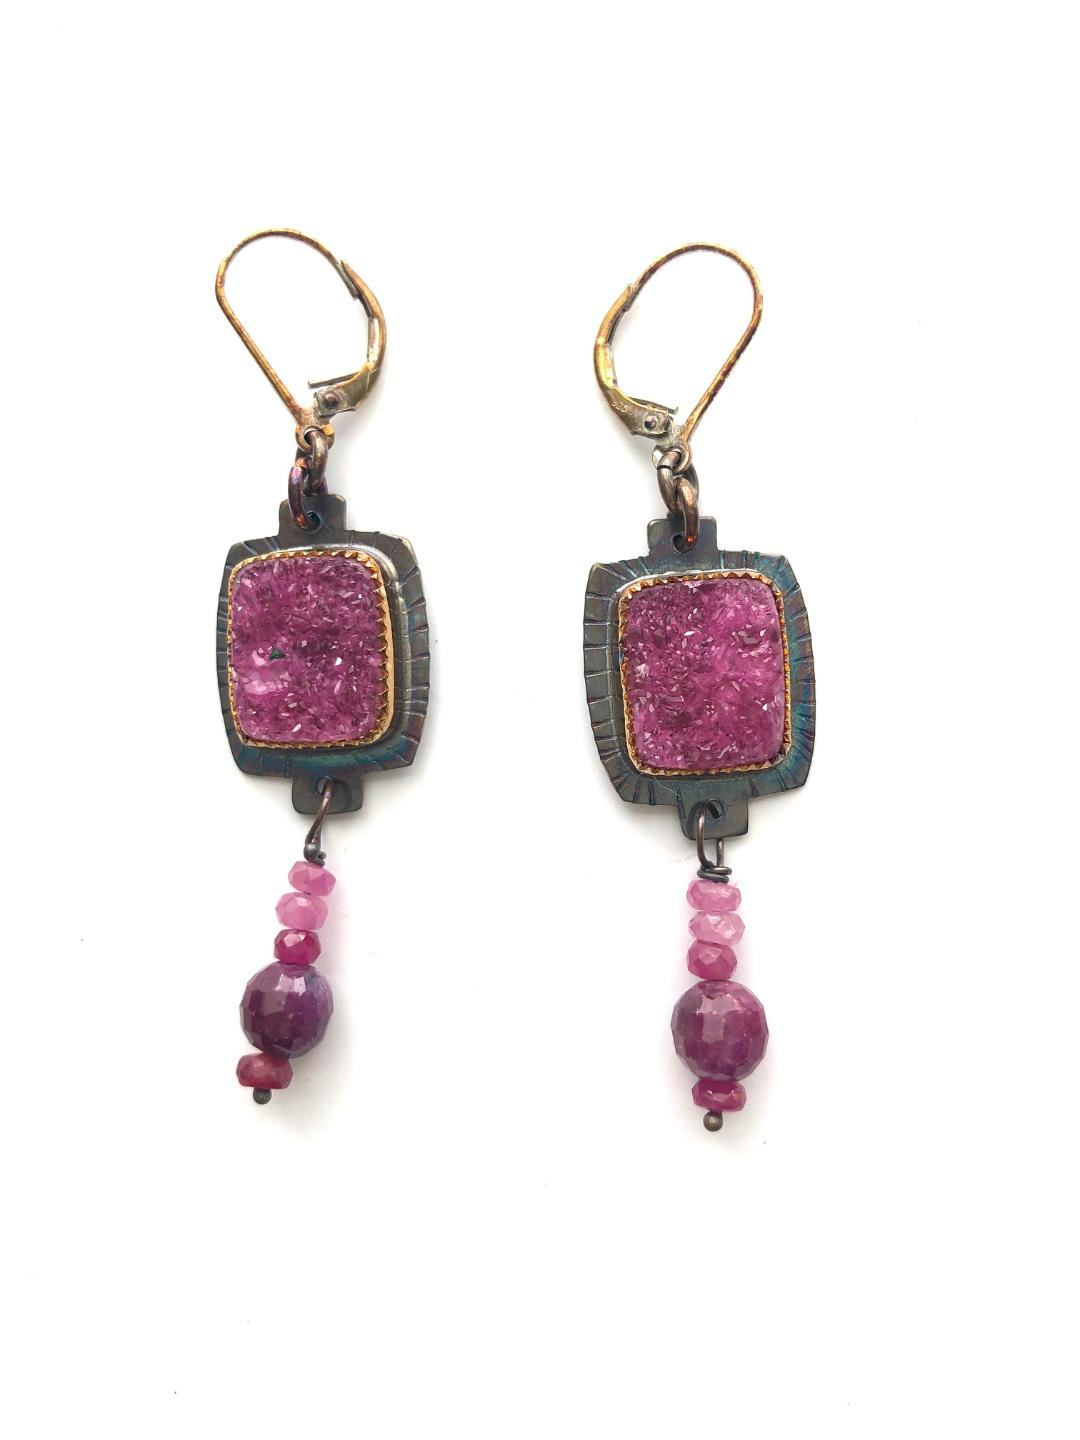 Cobalto Calcite Druzy and Rubies Earrings in Sterling Silver